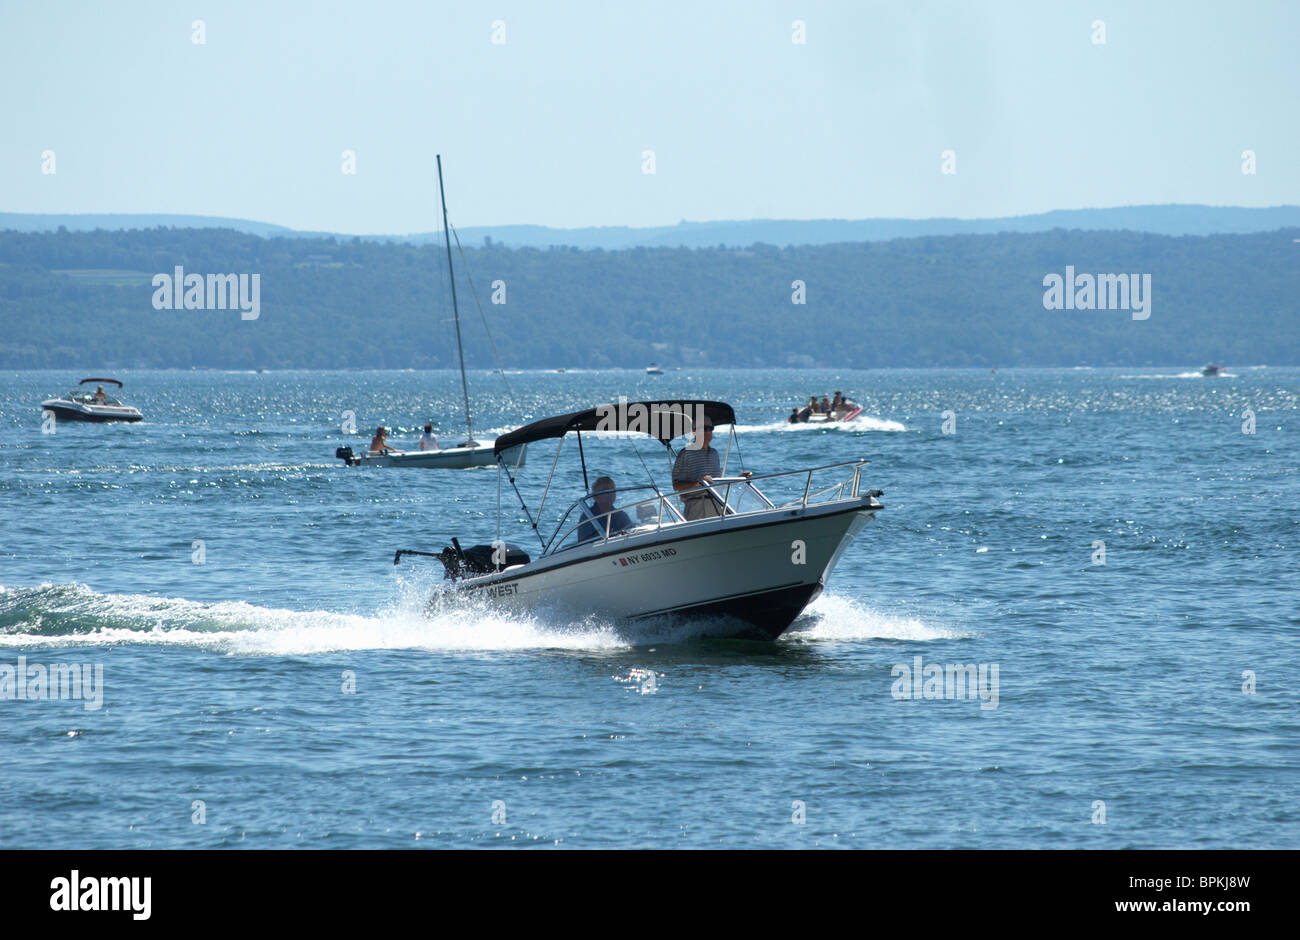 Recreational boaters enjoy Sunday afternoon on Lake Canandaigua, New York. - Stock Image